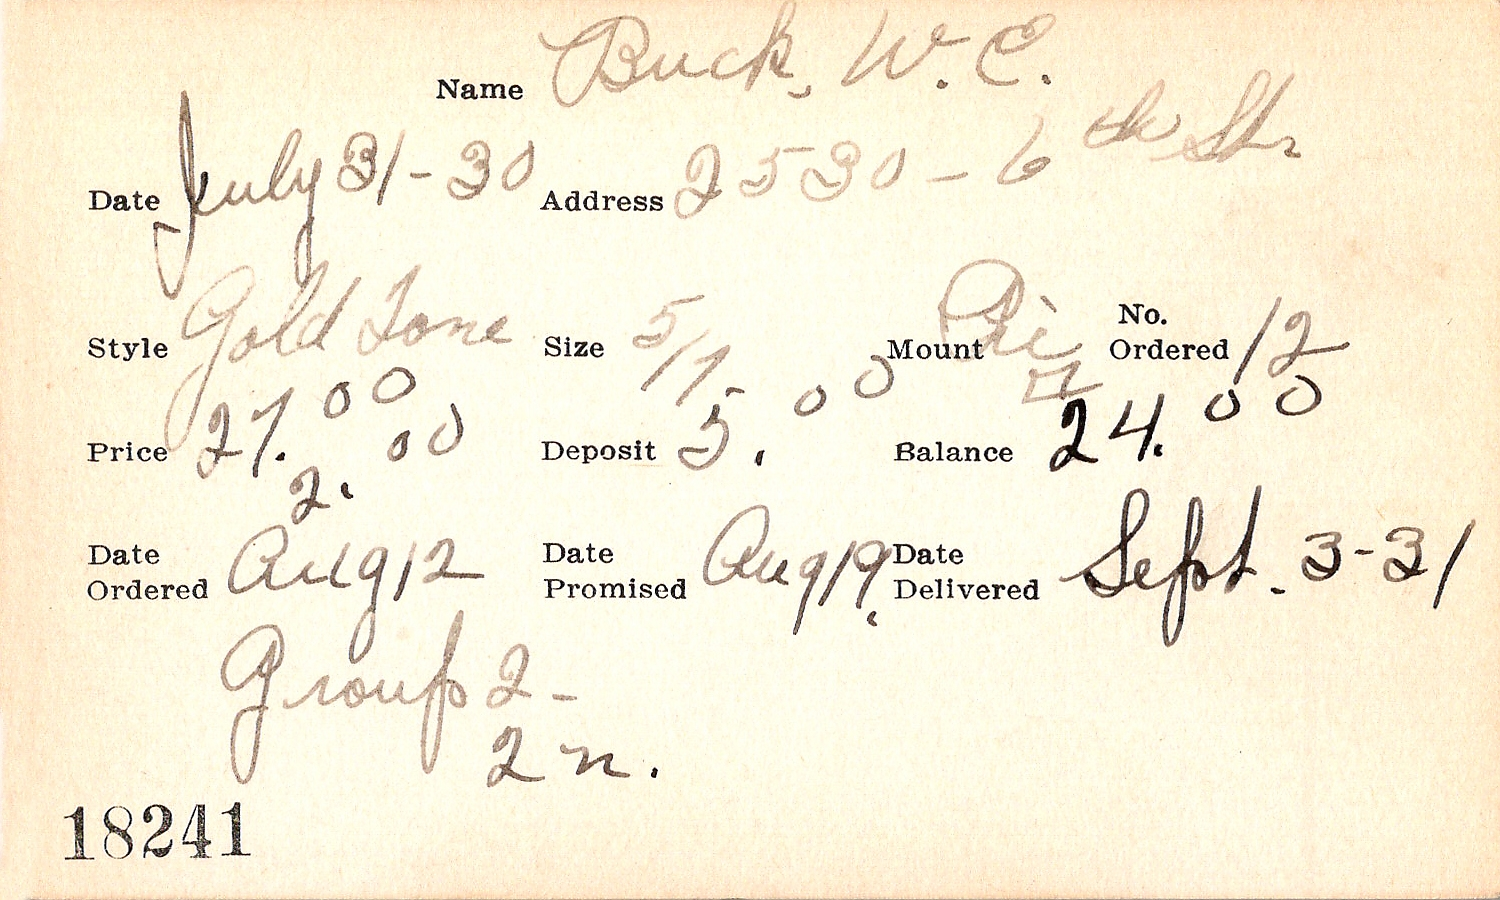 Index card for W. E. Buck